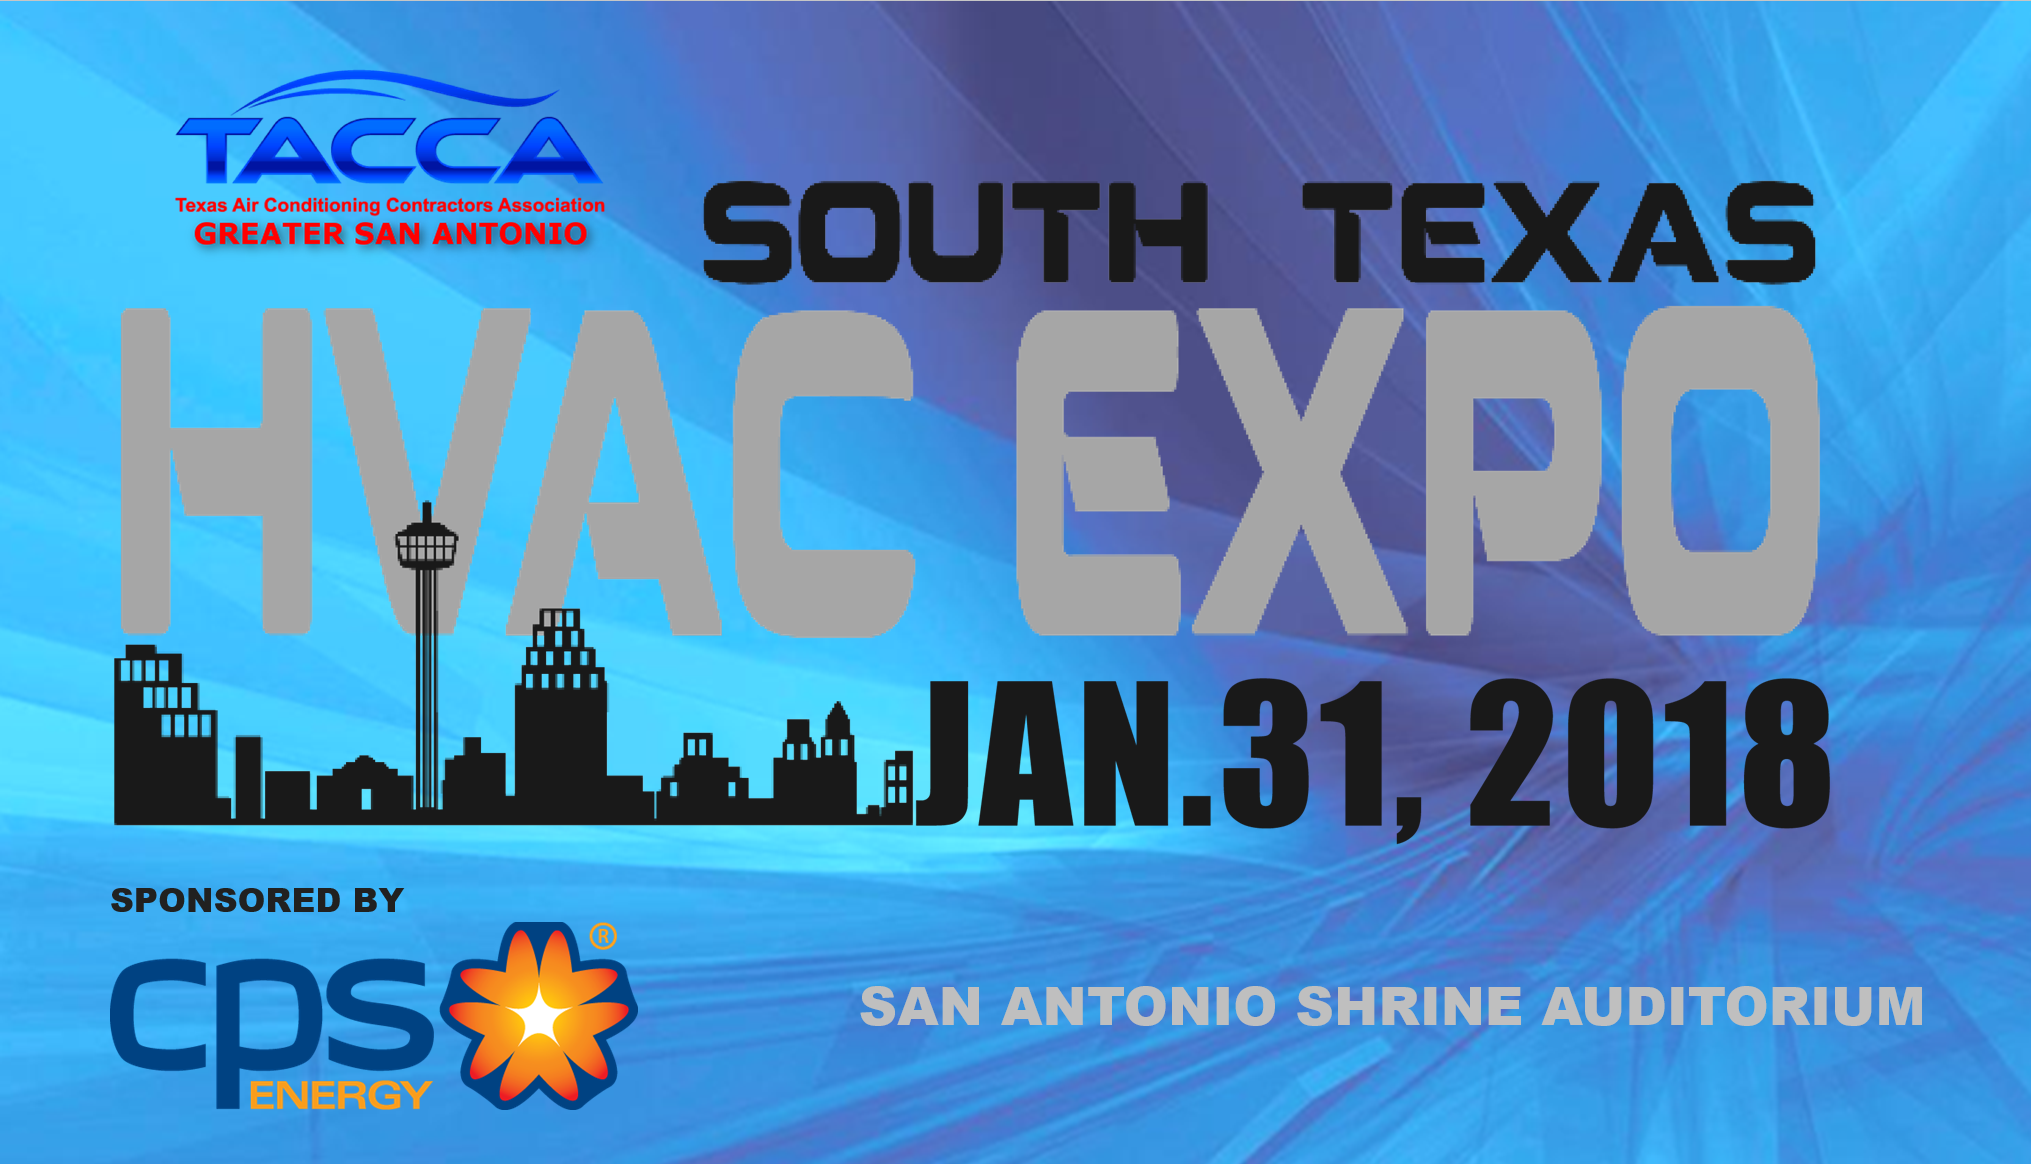 South Texas HVAC EXPO 2018